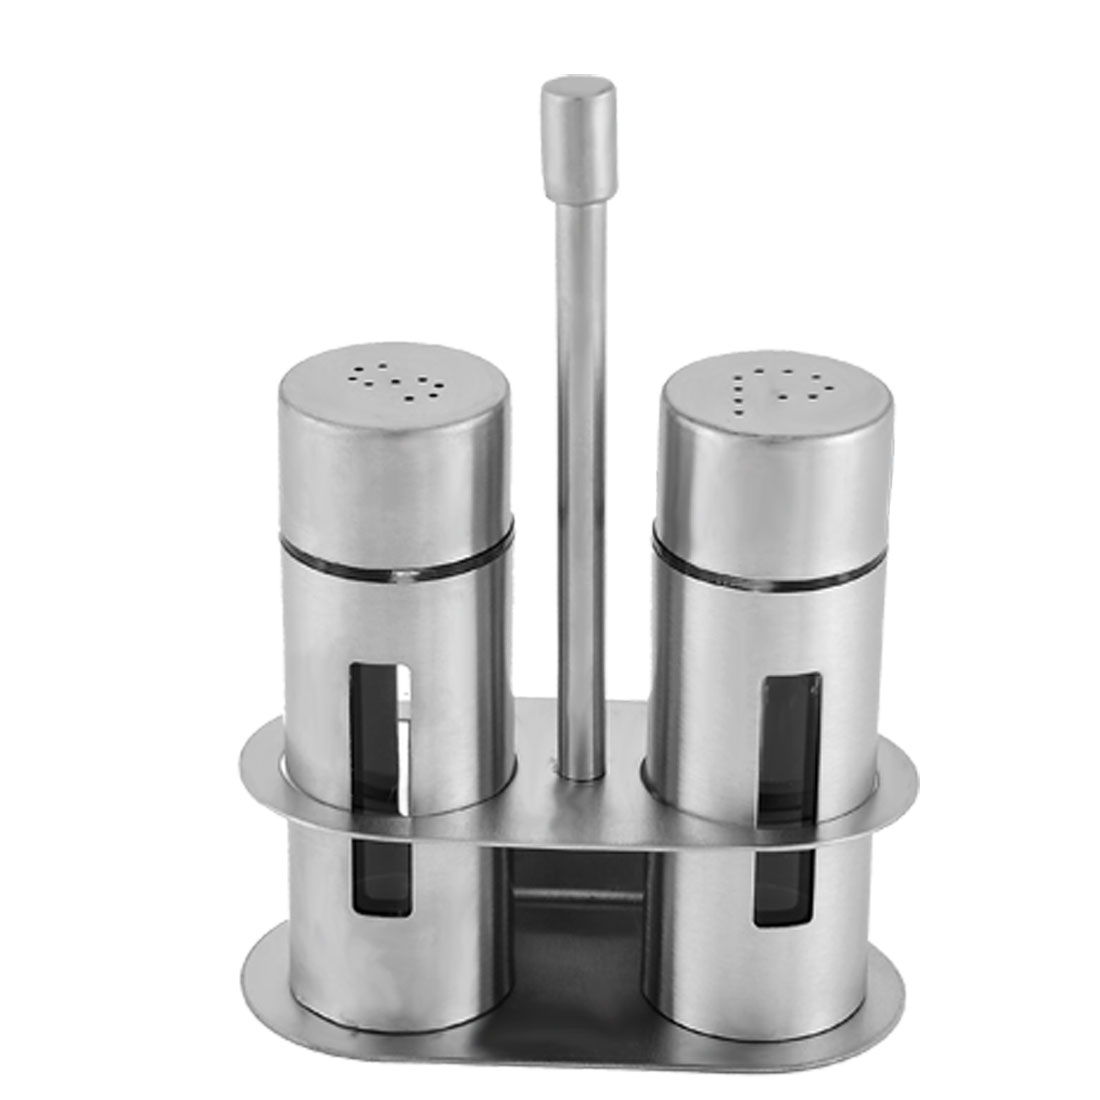 Home Kitchen Stainless Steel Shell Pepper Spice Shaker Bottle Rack Set 3 in 1